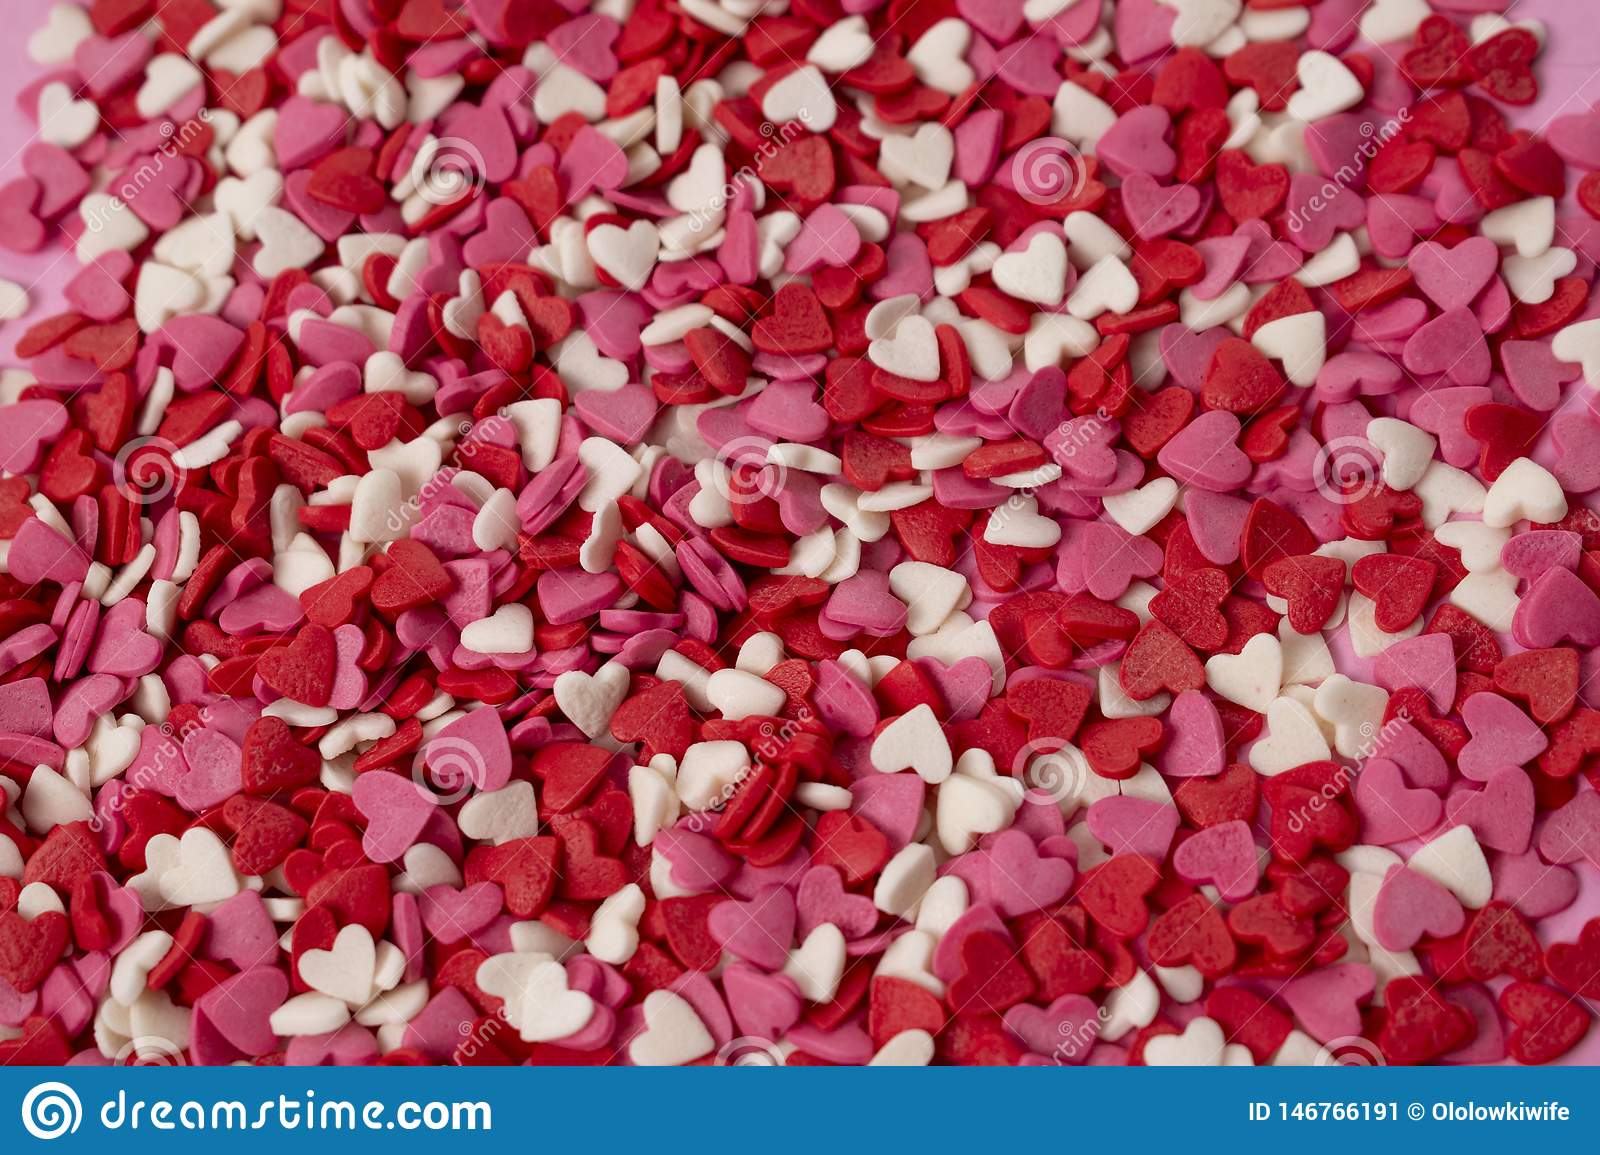 Very small heart-shaped candies are scattered across the background. Many small bright hearts in bulk